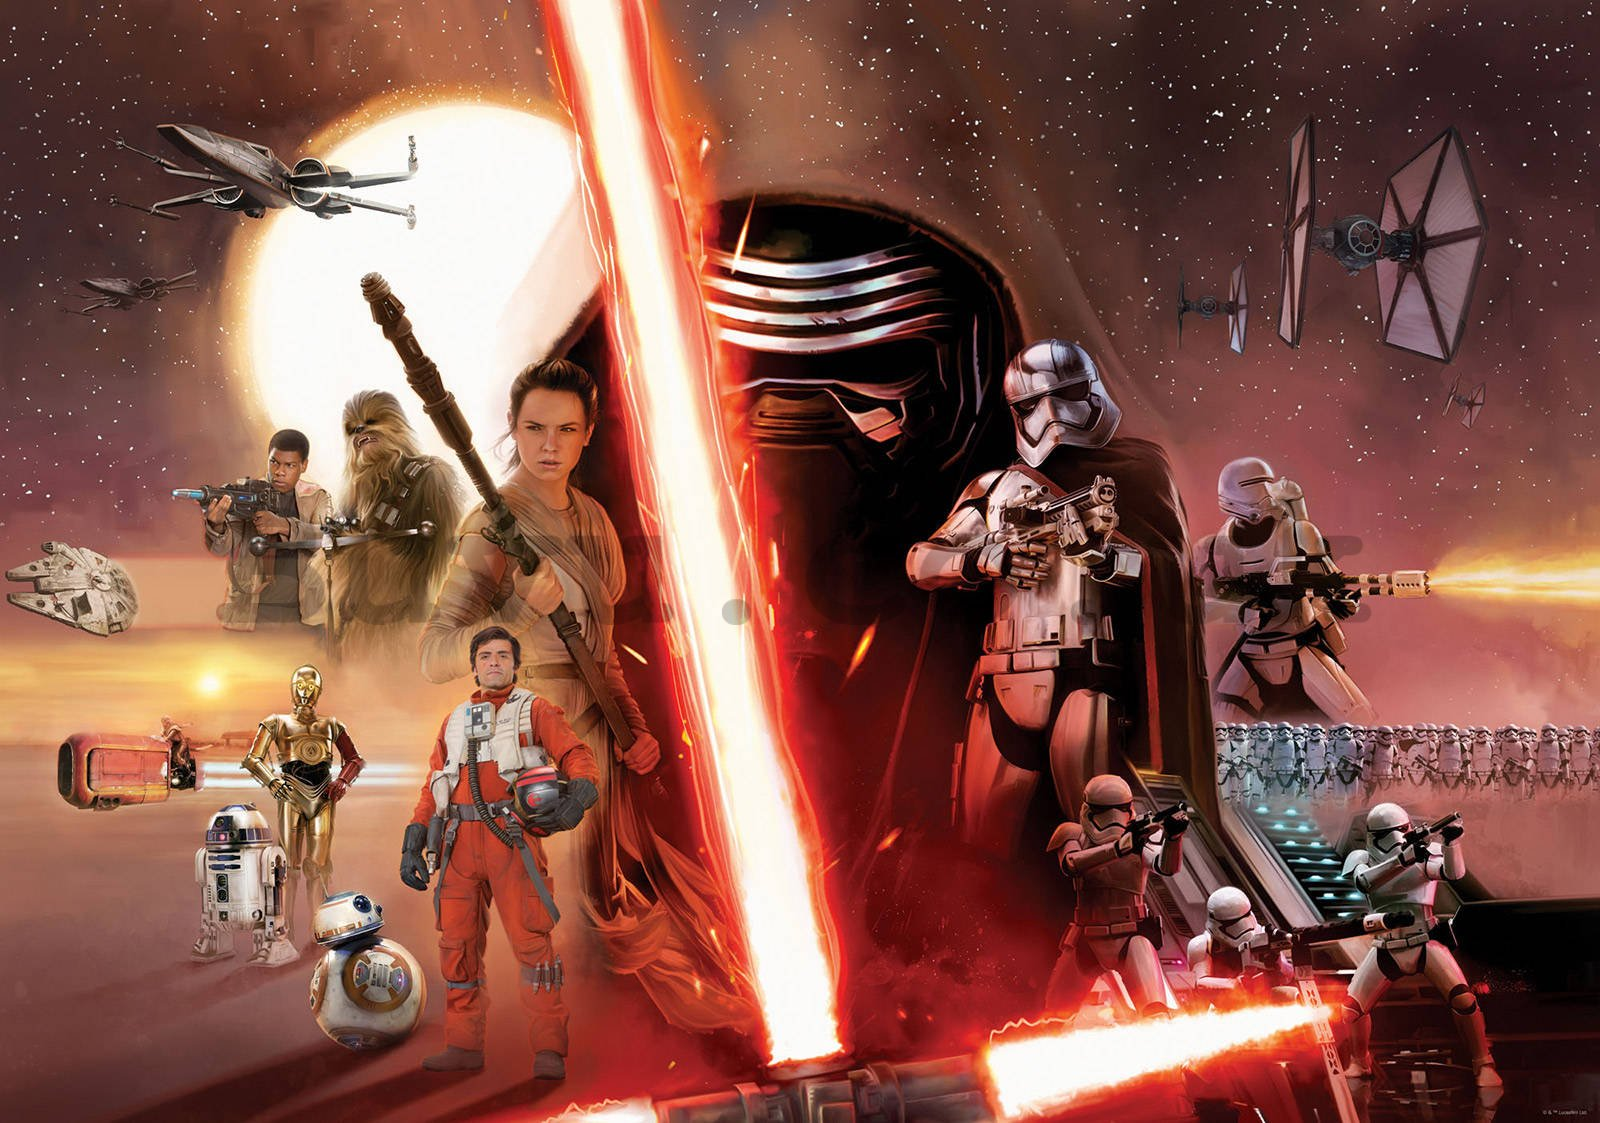 Vlies wall mural: Star Wars The Force Awakens (1) - 416x254cm